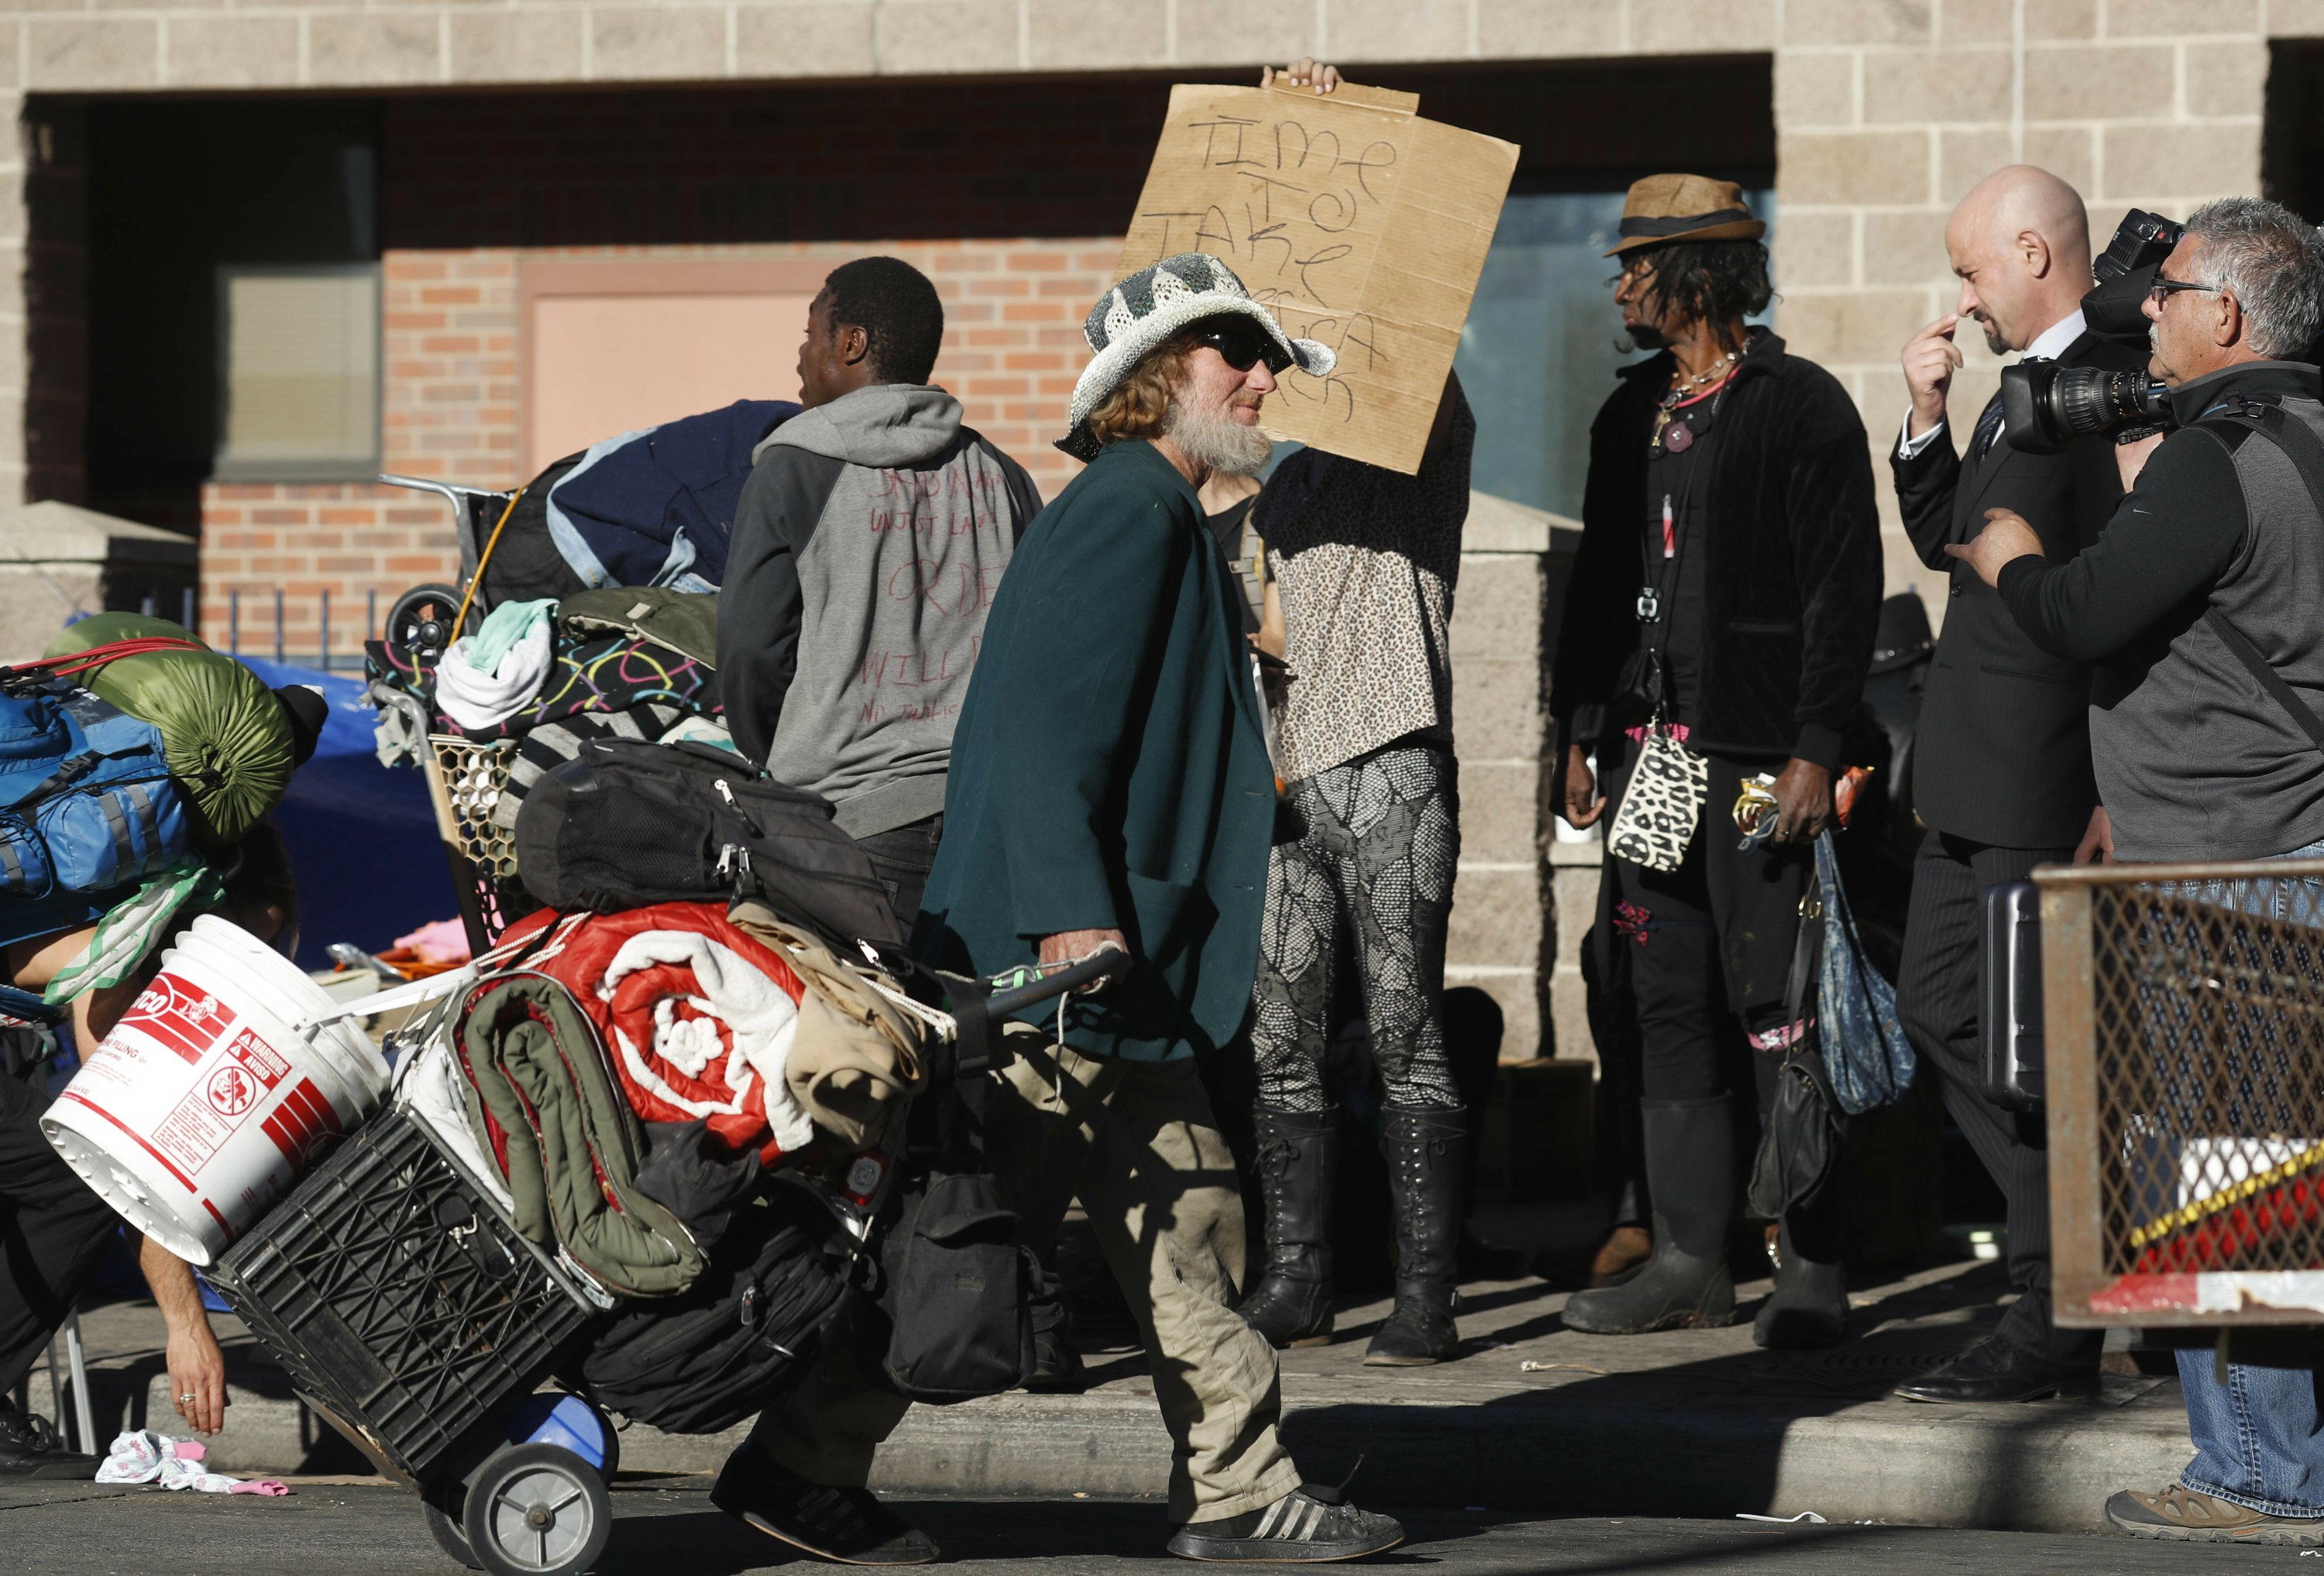 Report: Cities passing more laws making homelessness a crime